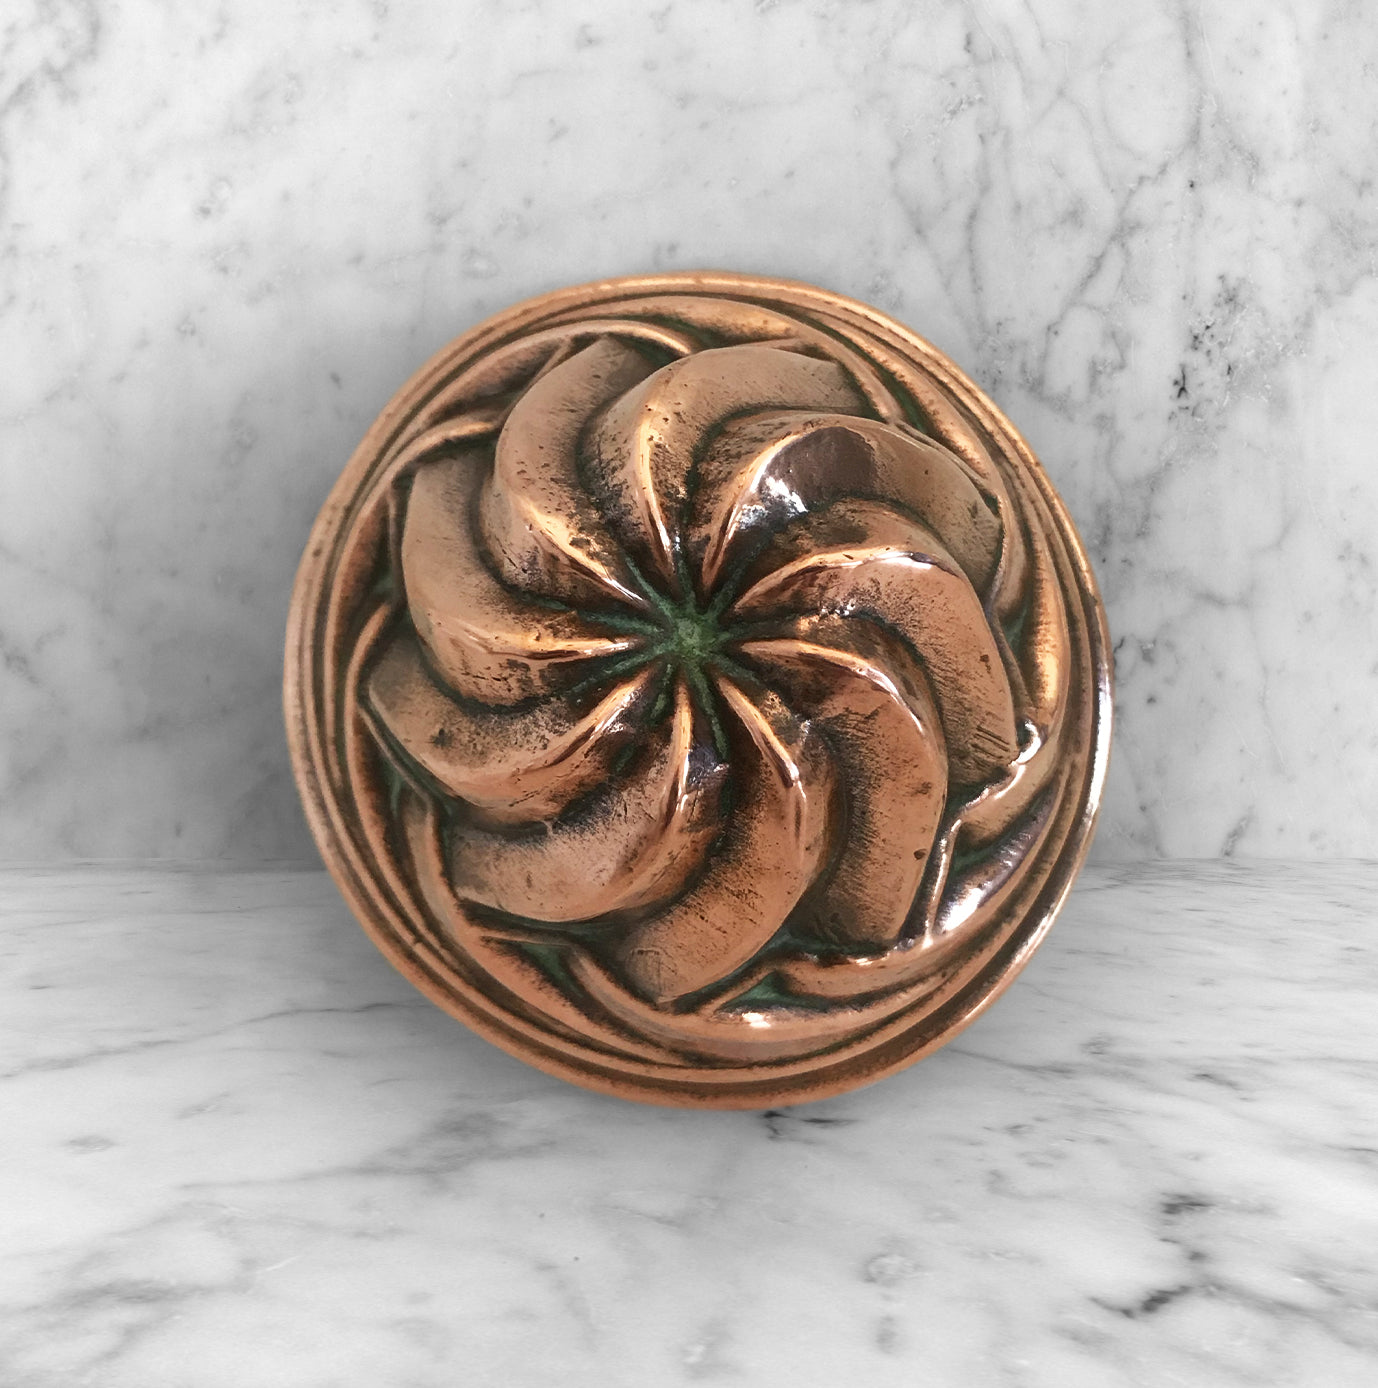 Nice small Victorian Copper Jelly or Blancmange Mould The Copper has a wonderl swirl pattern with a beautiful aged patina. Marked '123' on its rim - SHOP NOW - www.intovintage.co.uk